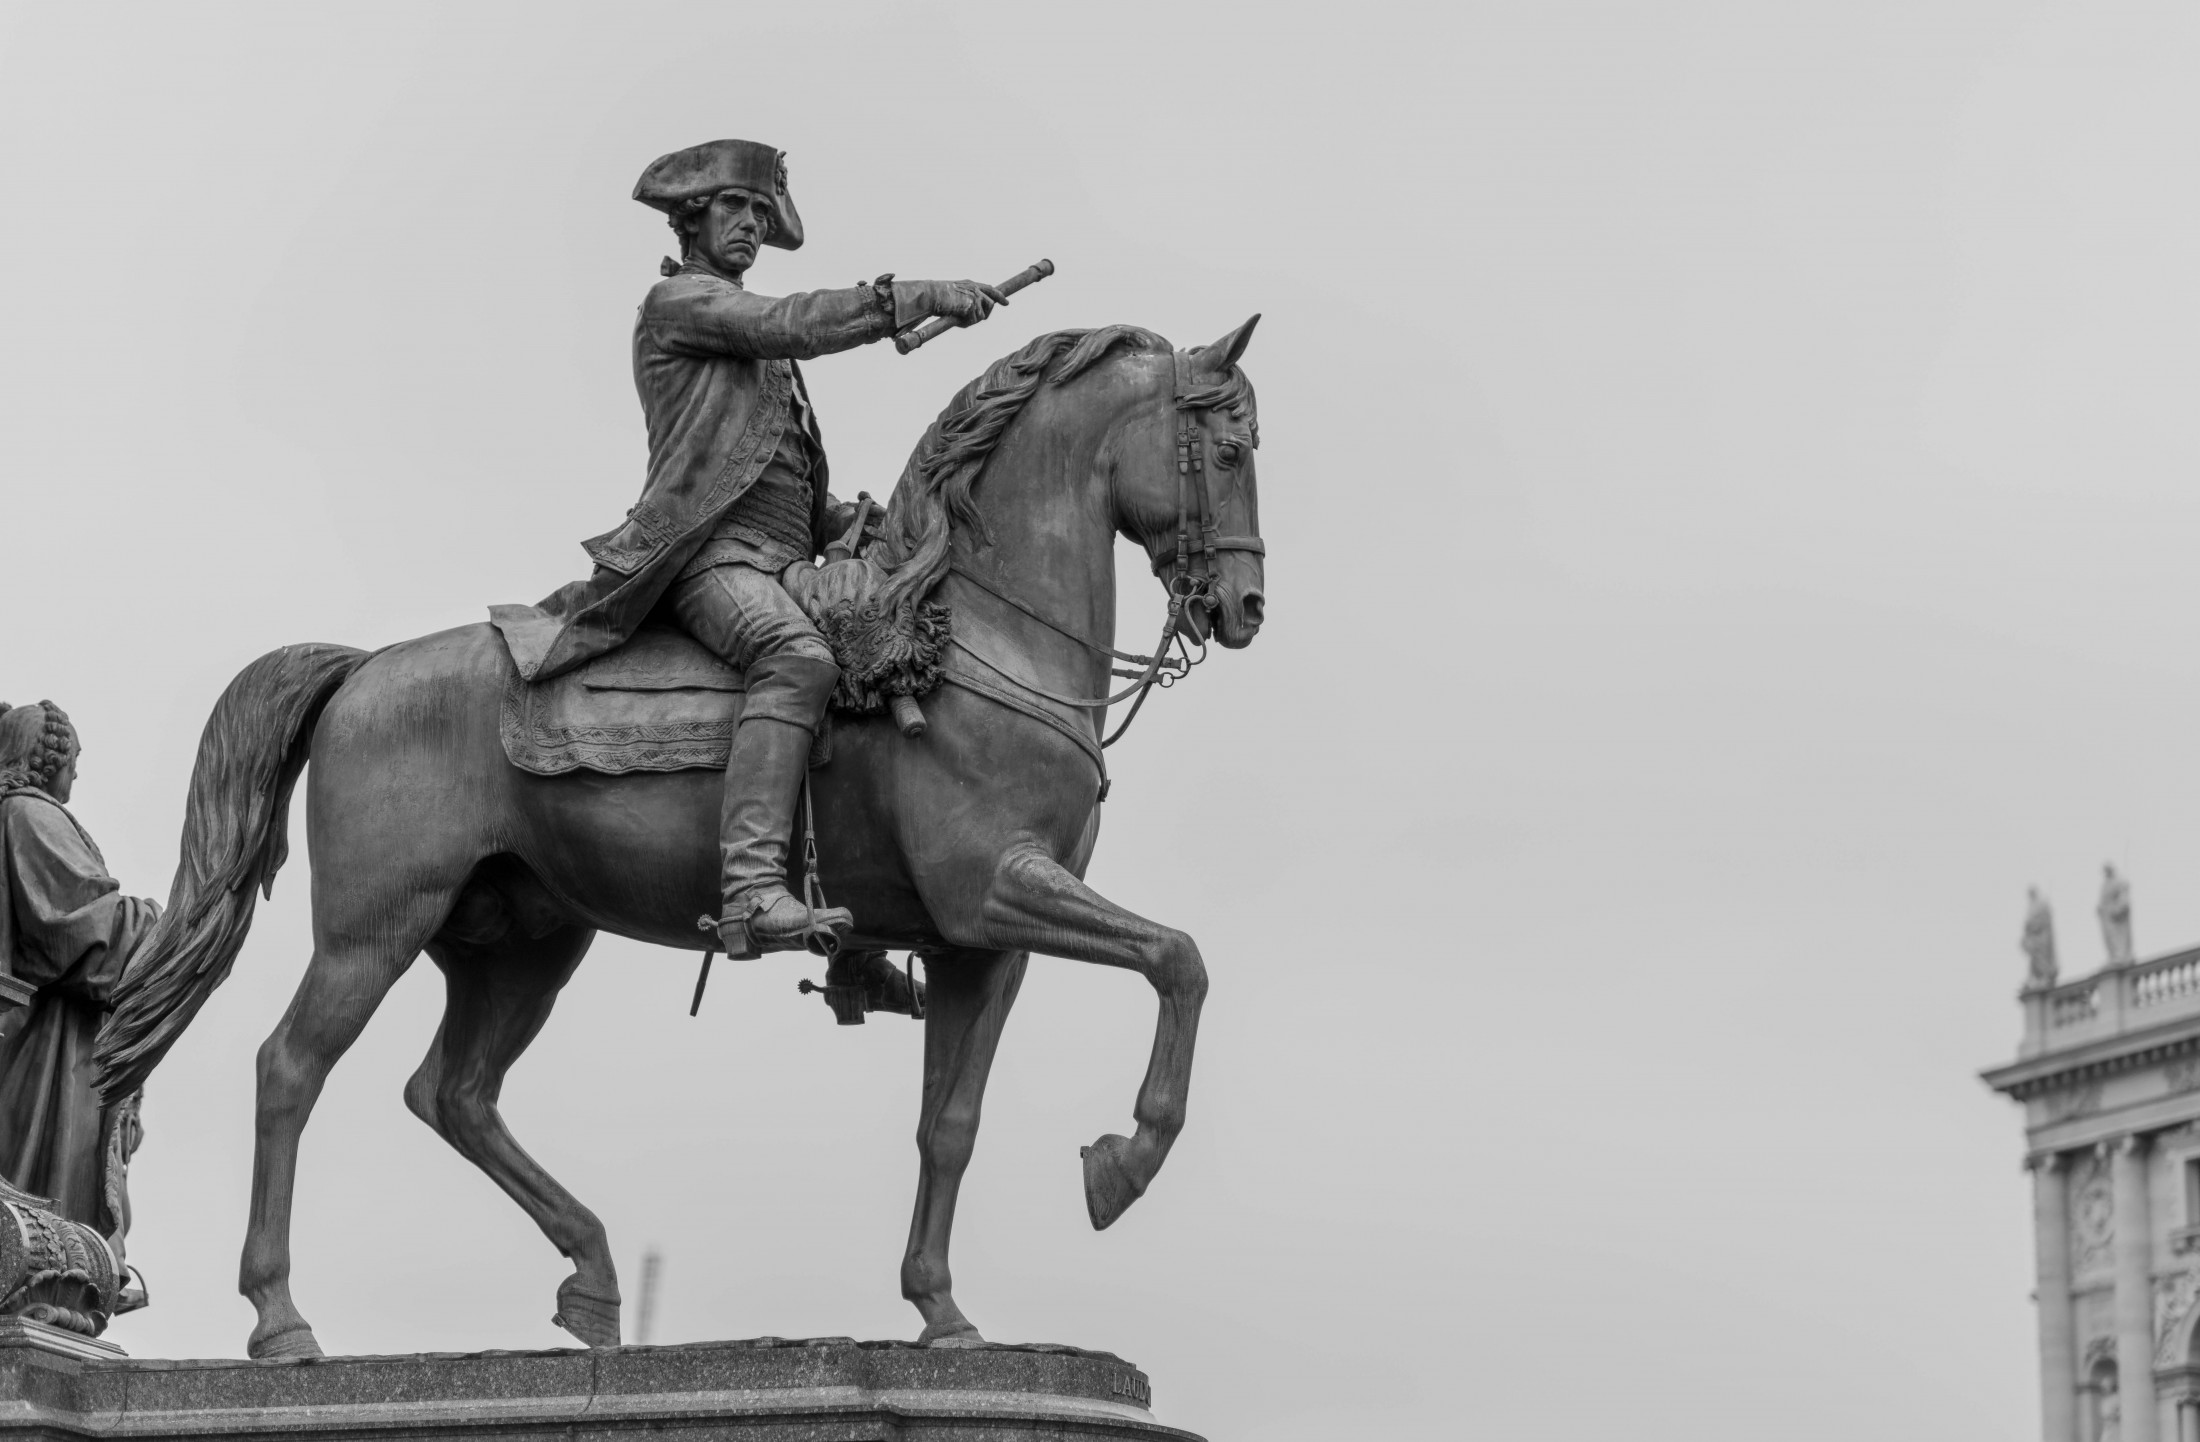 Statue of a cavalier